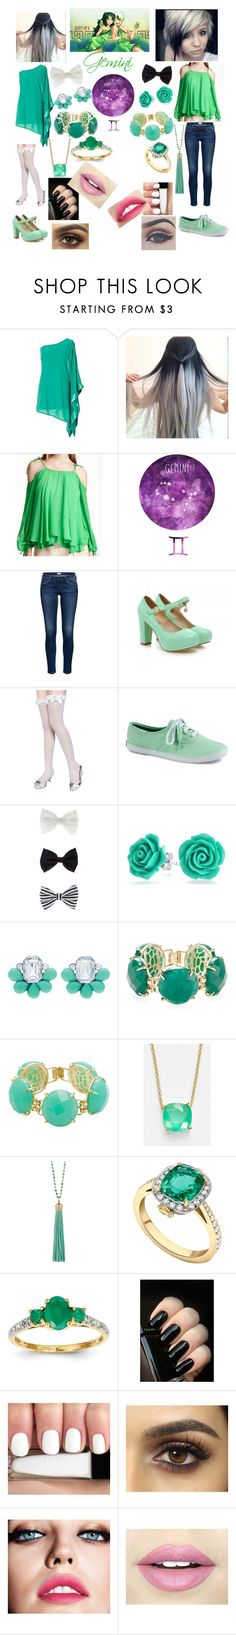 """""""Gemini"""" by animewolfspirit1997 ❤ liked on Polyvore featuring Charming Kicks, Keds, Accessorize, Bling Jewelry, Kendra Scott, Kate Spade, Elizabeth Raine, Kevin Jewelers, Bellezza and Maybelline"""